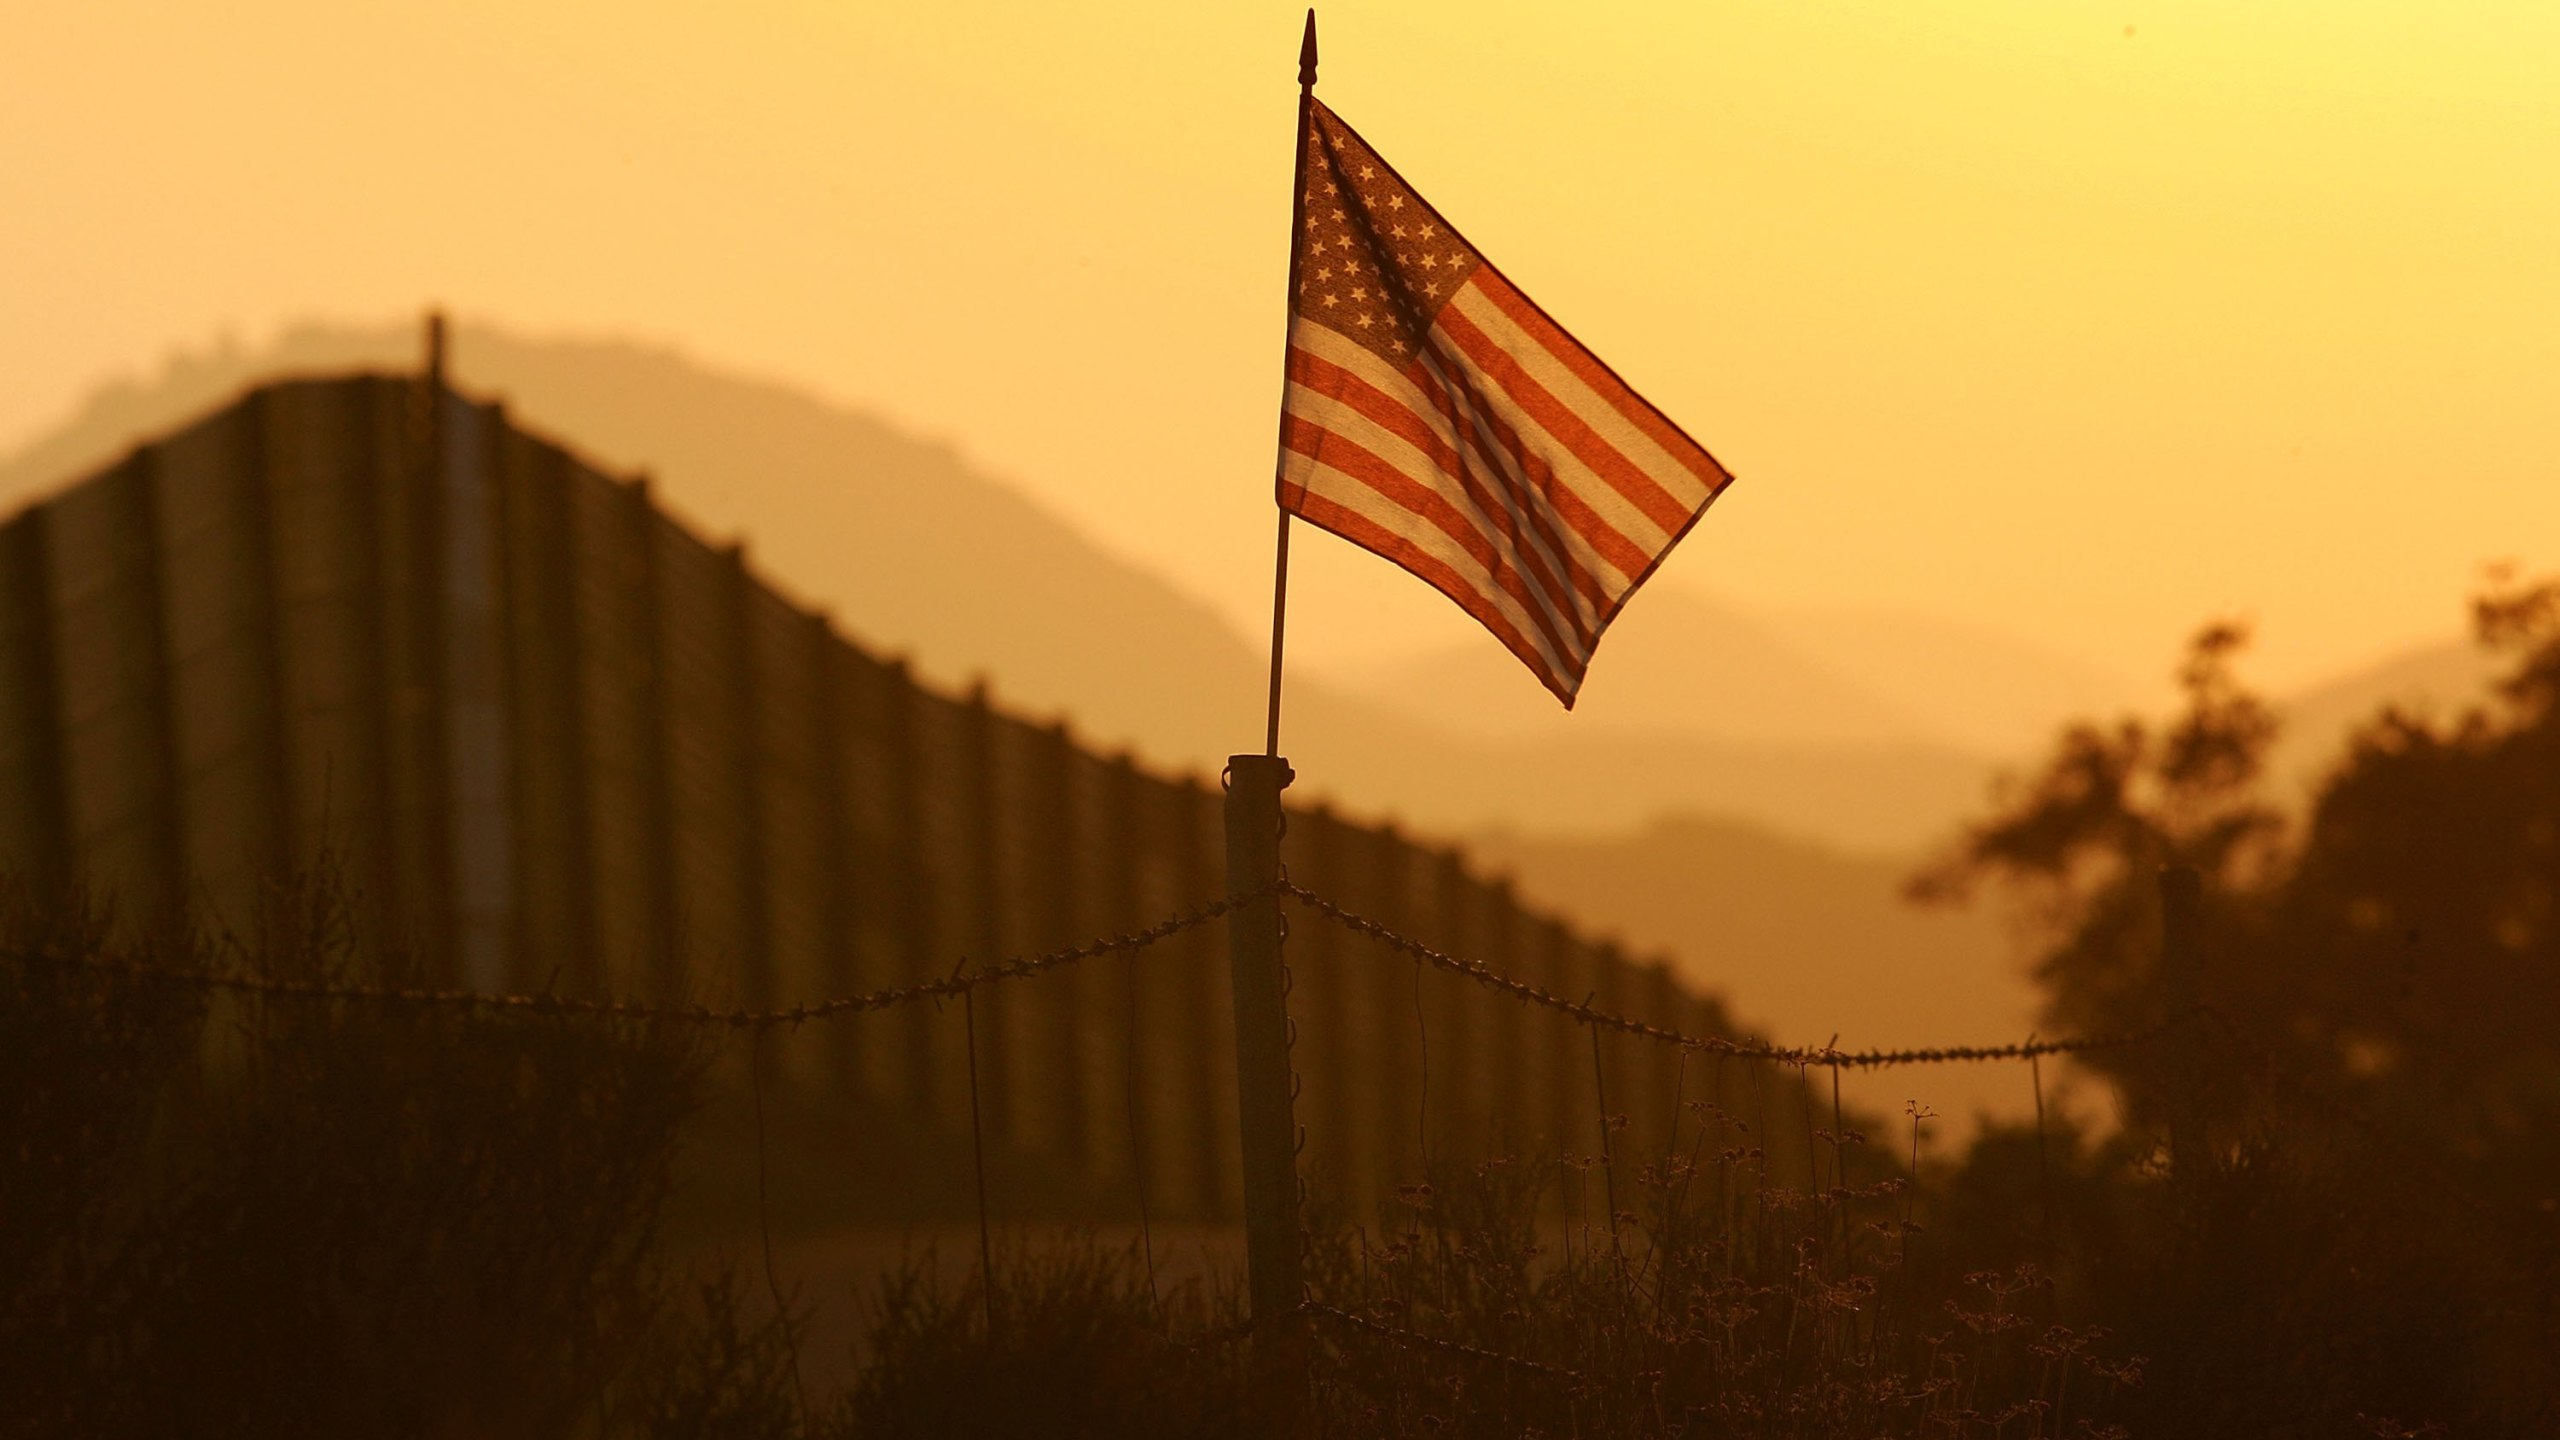 A U.S. flag put up by activists who oppose illegal immigration flies near the US-Mexico border fence in an area where they search for border crossers October 8, 2006 near Campo, California. (Credit: David McNew/Getty Images)